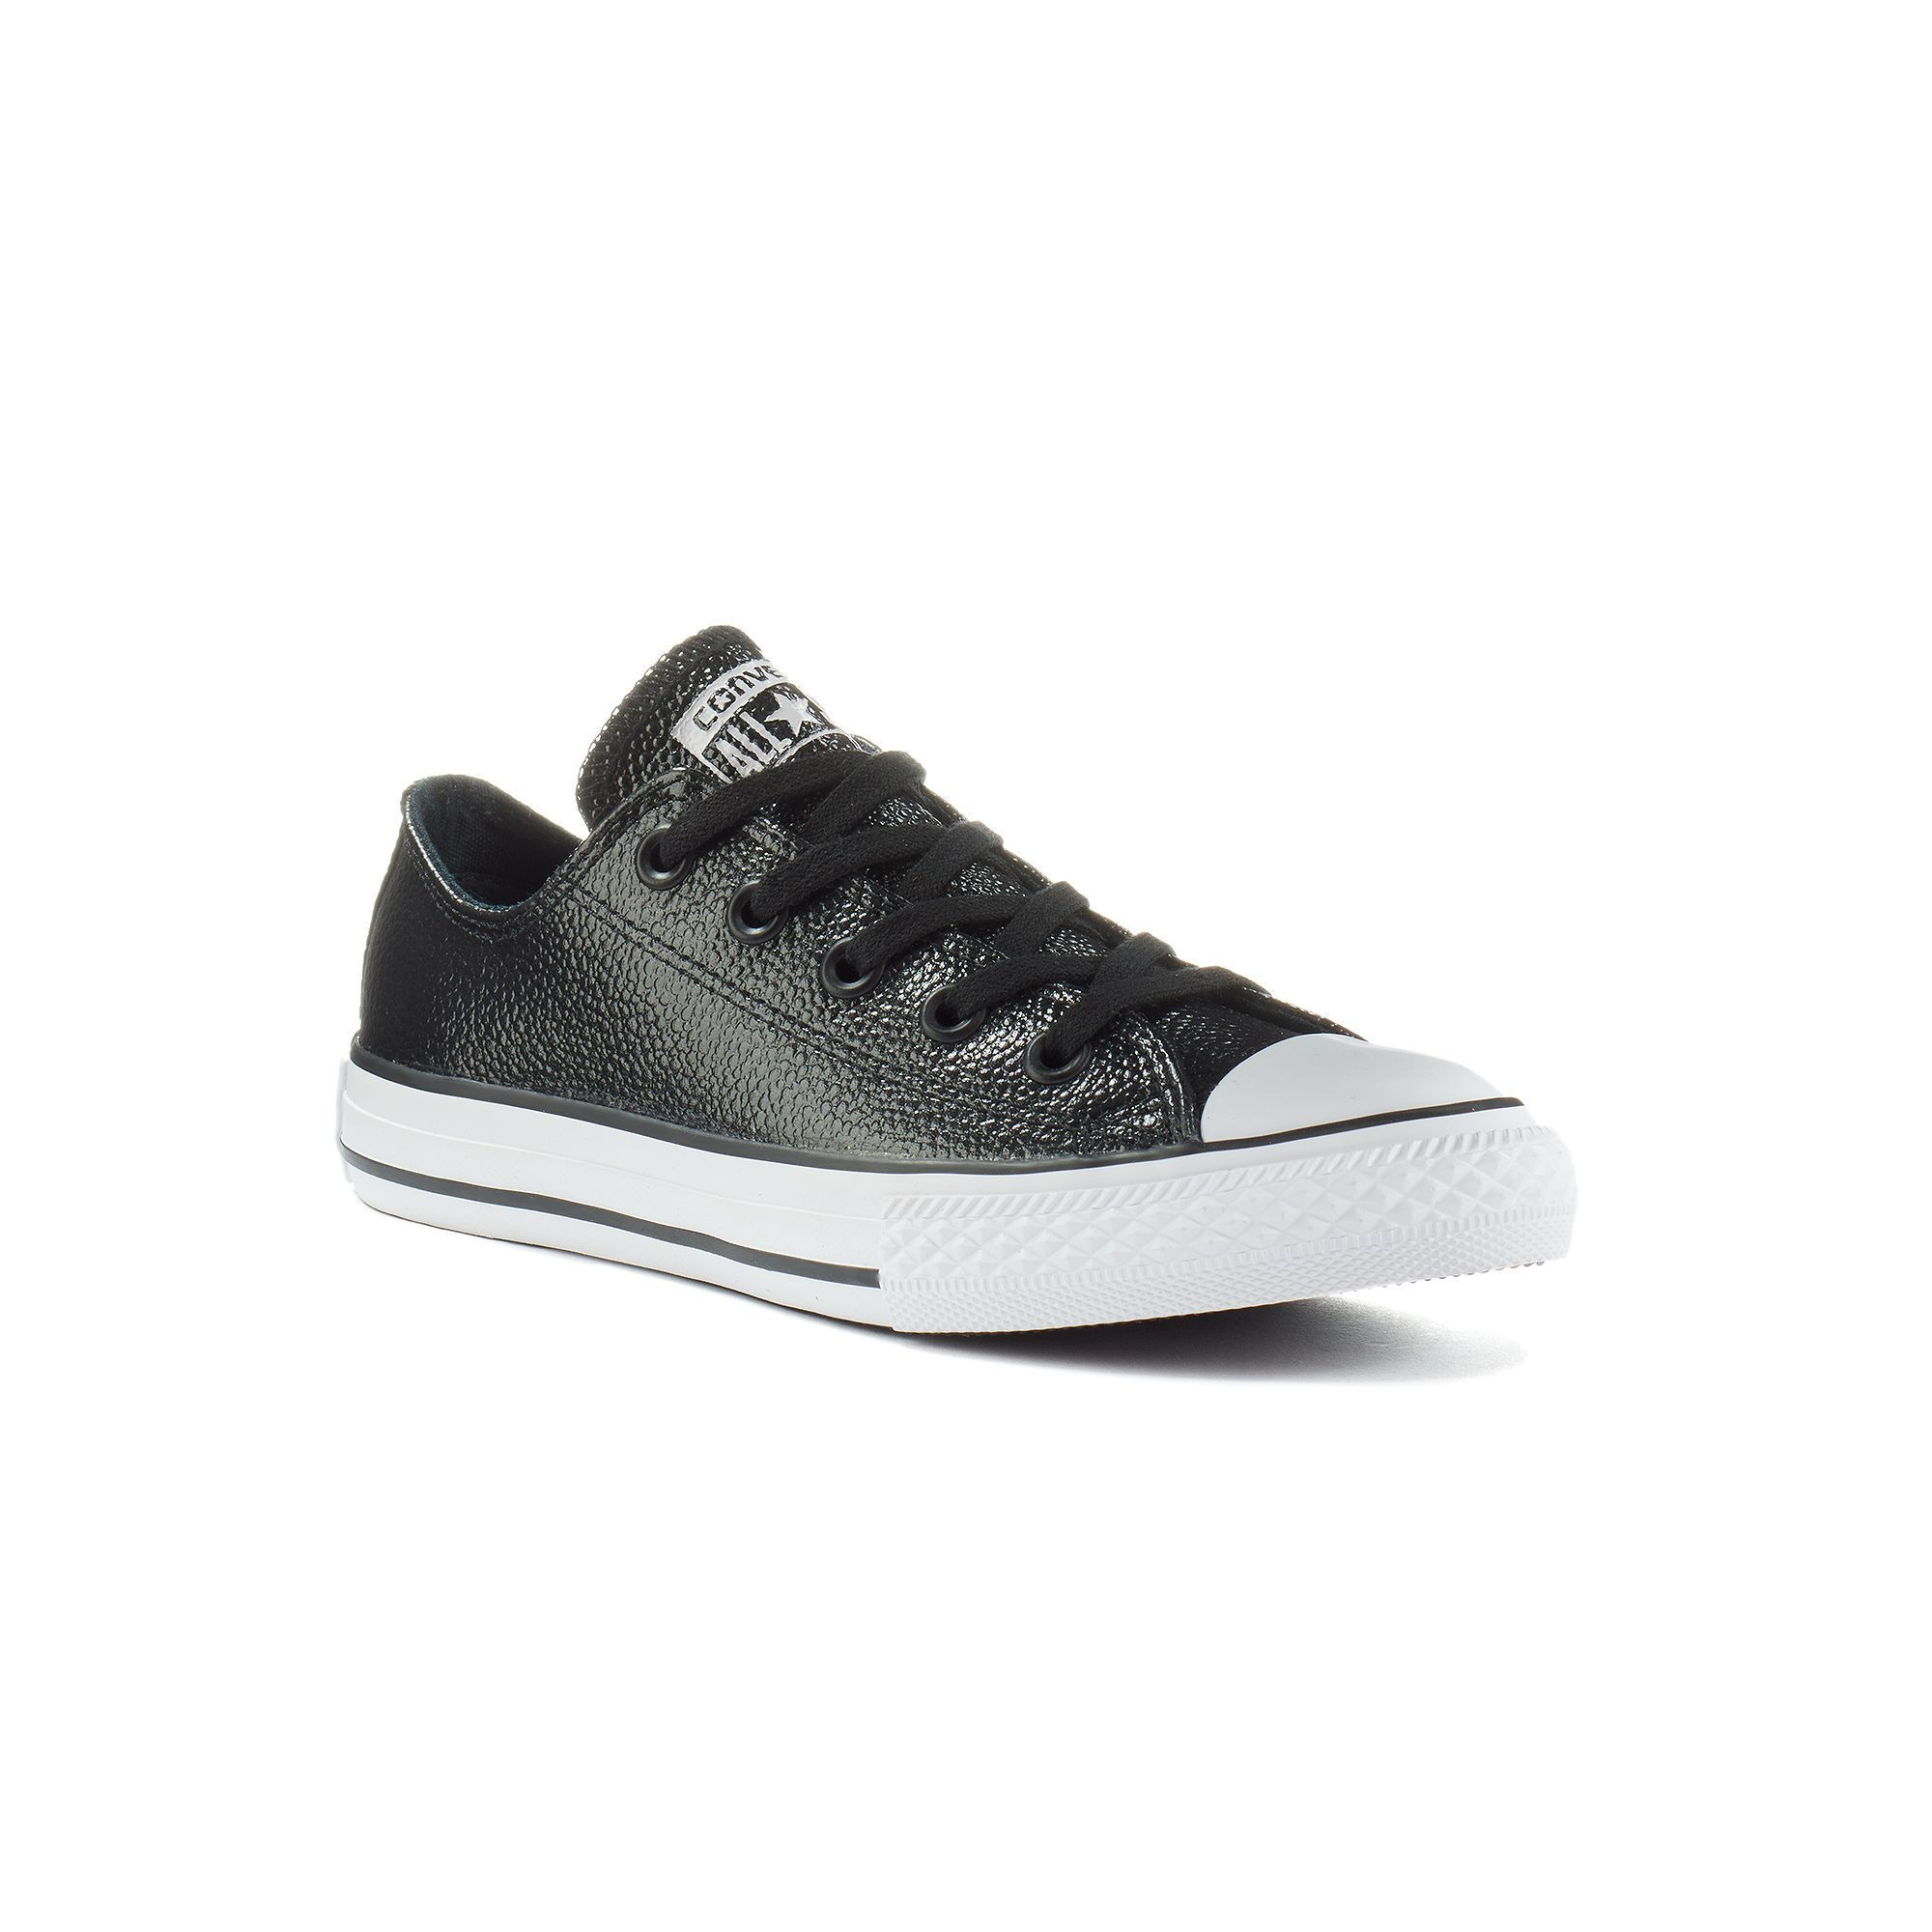 6e3d5ba8144 Kids  Converse Chuck Taylor All Star Stingray Leather Shoes